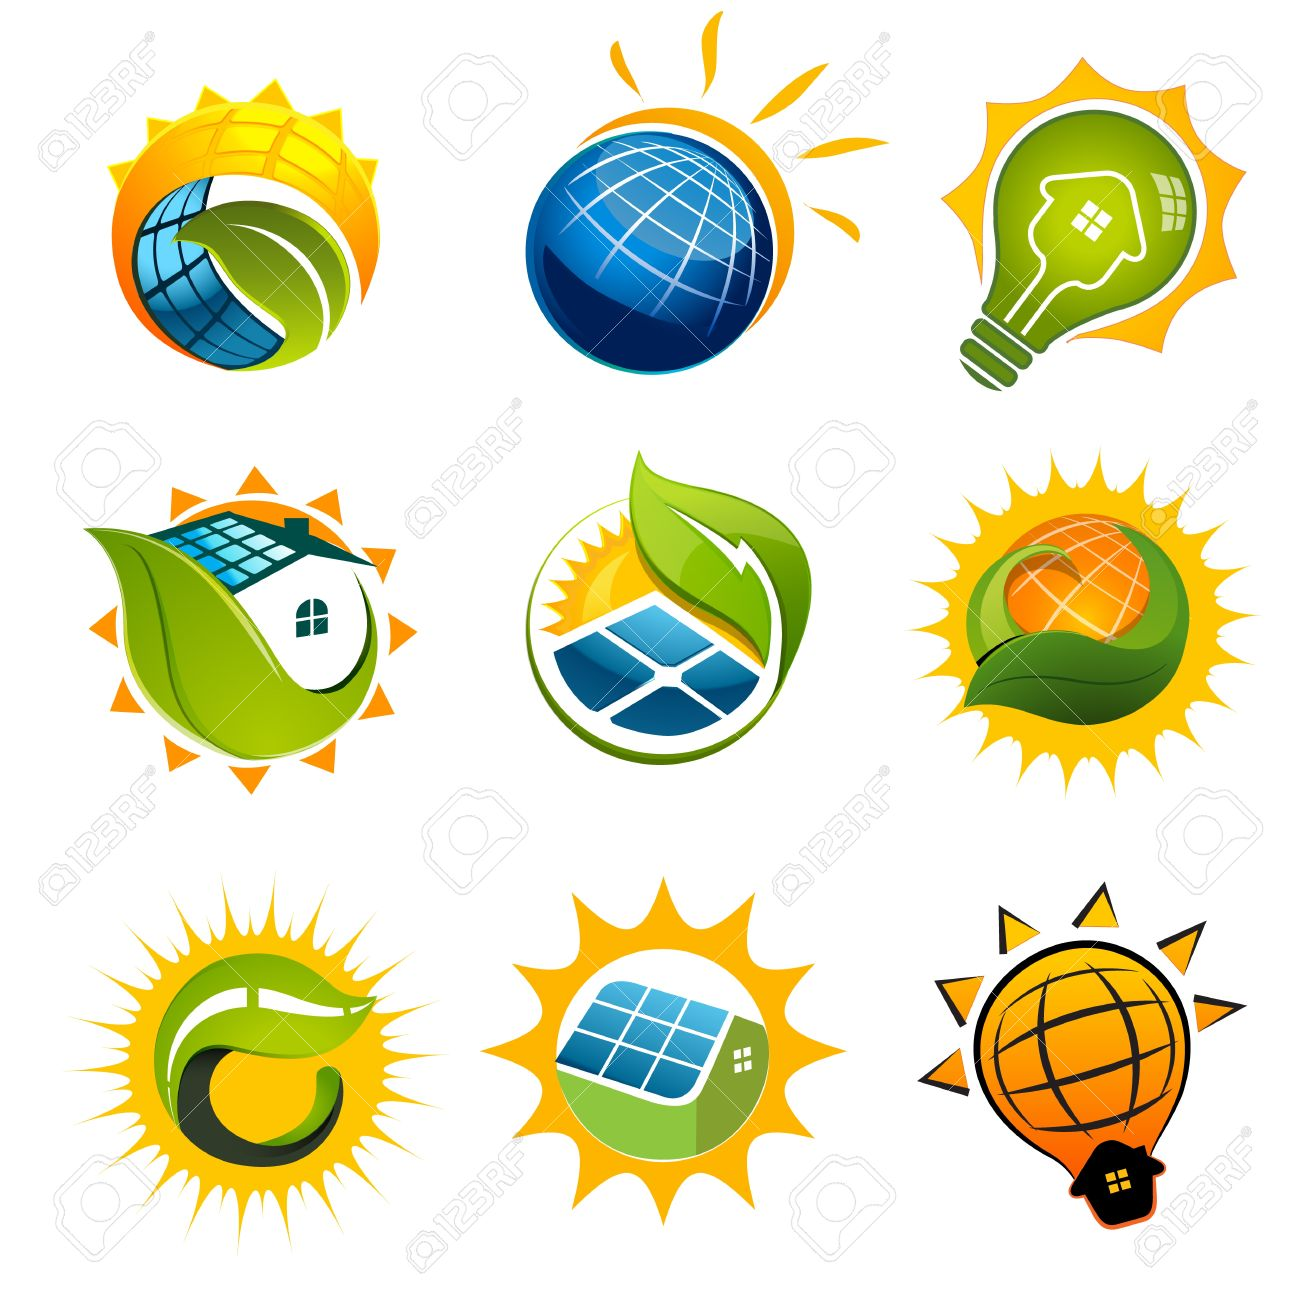 SET OF SOLAR Technology Vector Elements Royalty Free Cliparts.